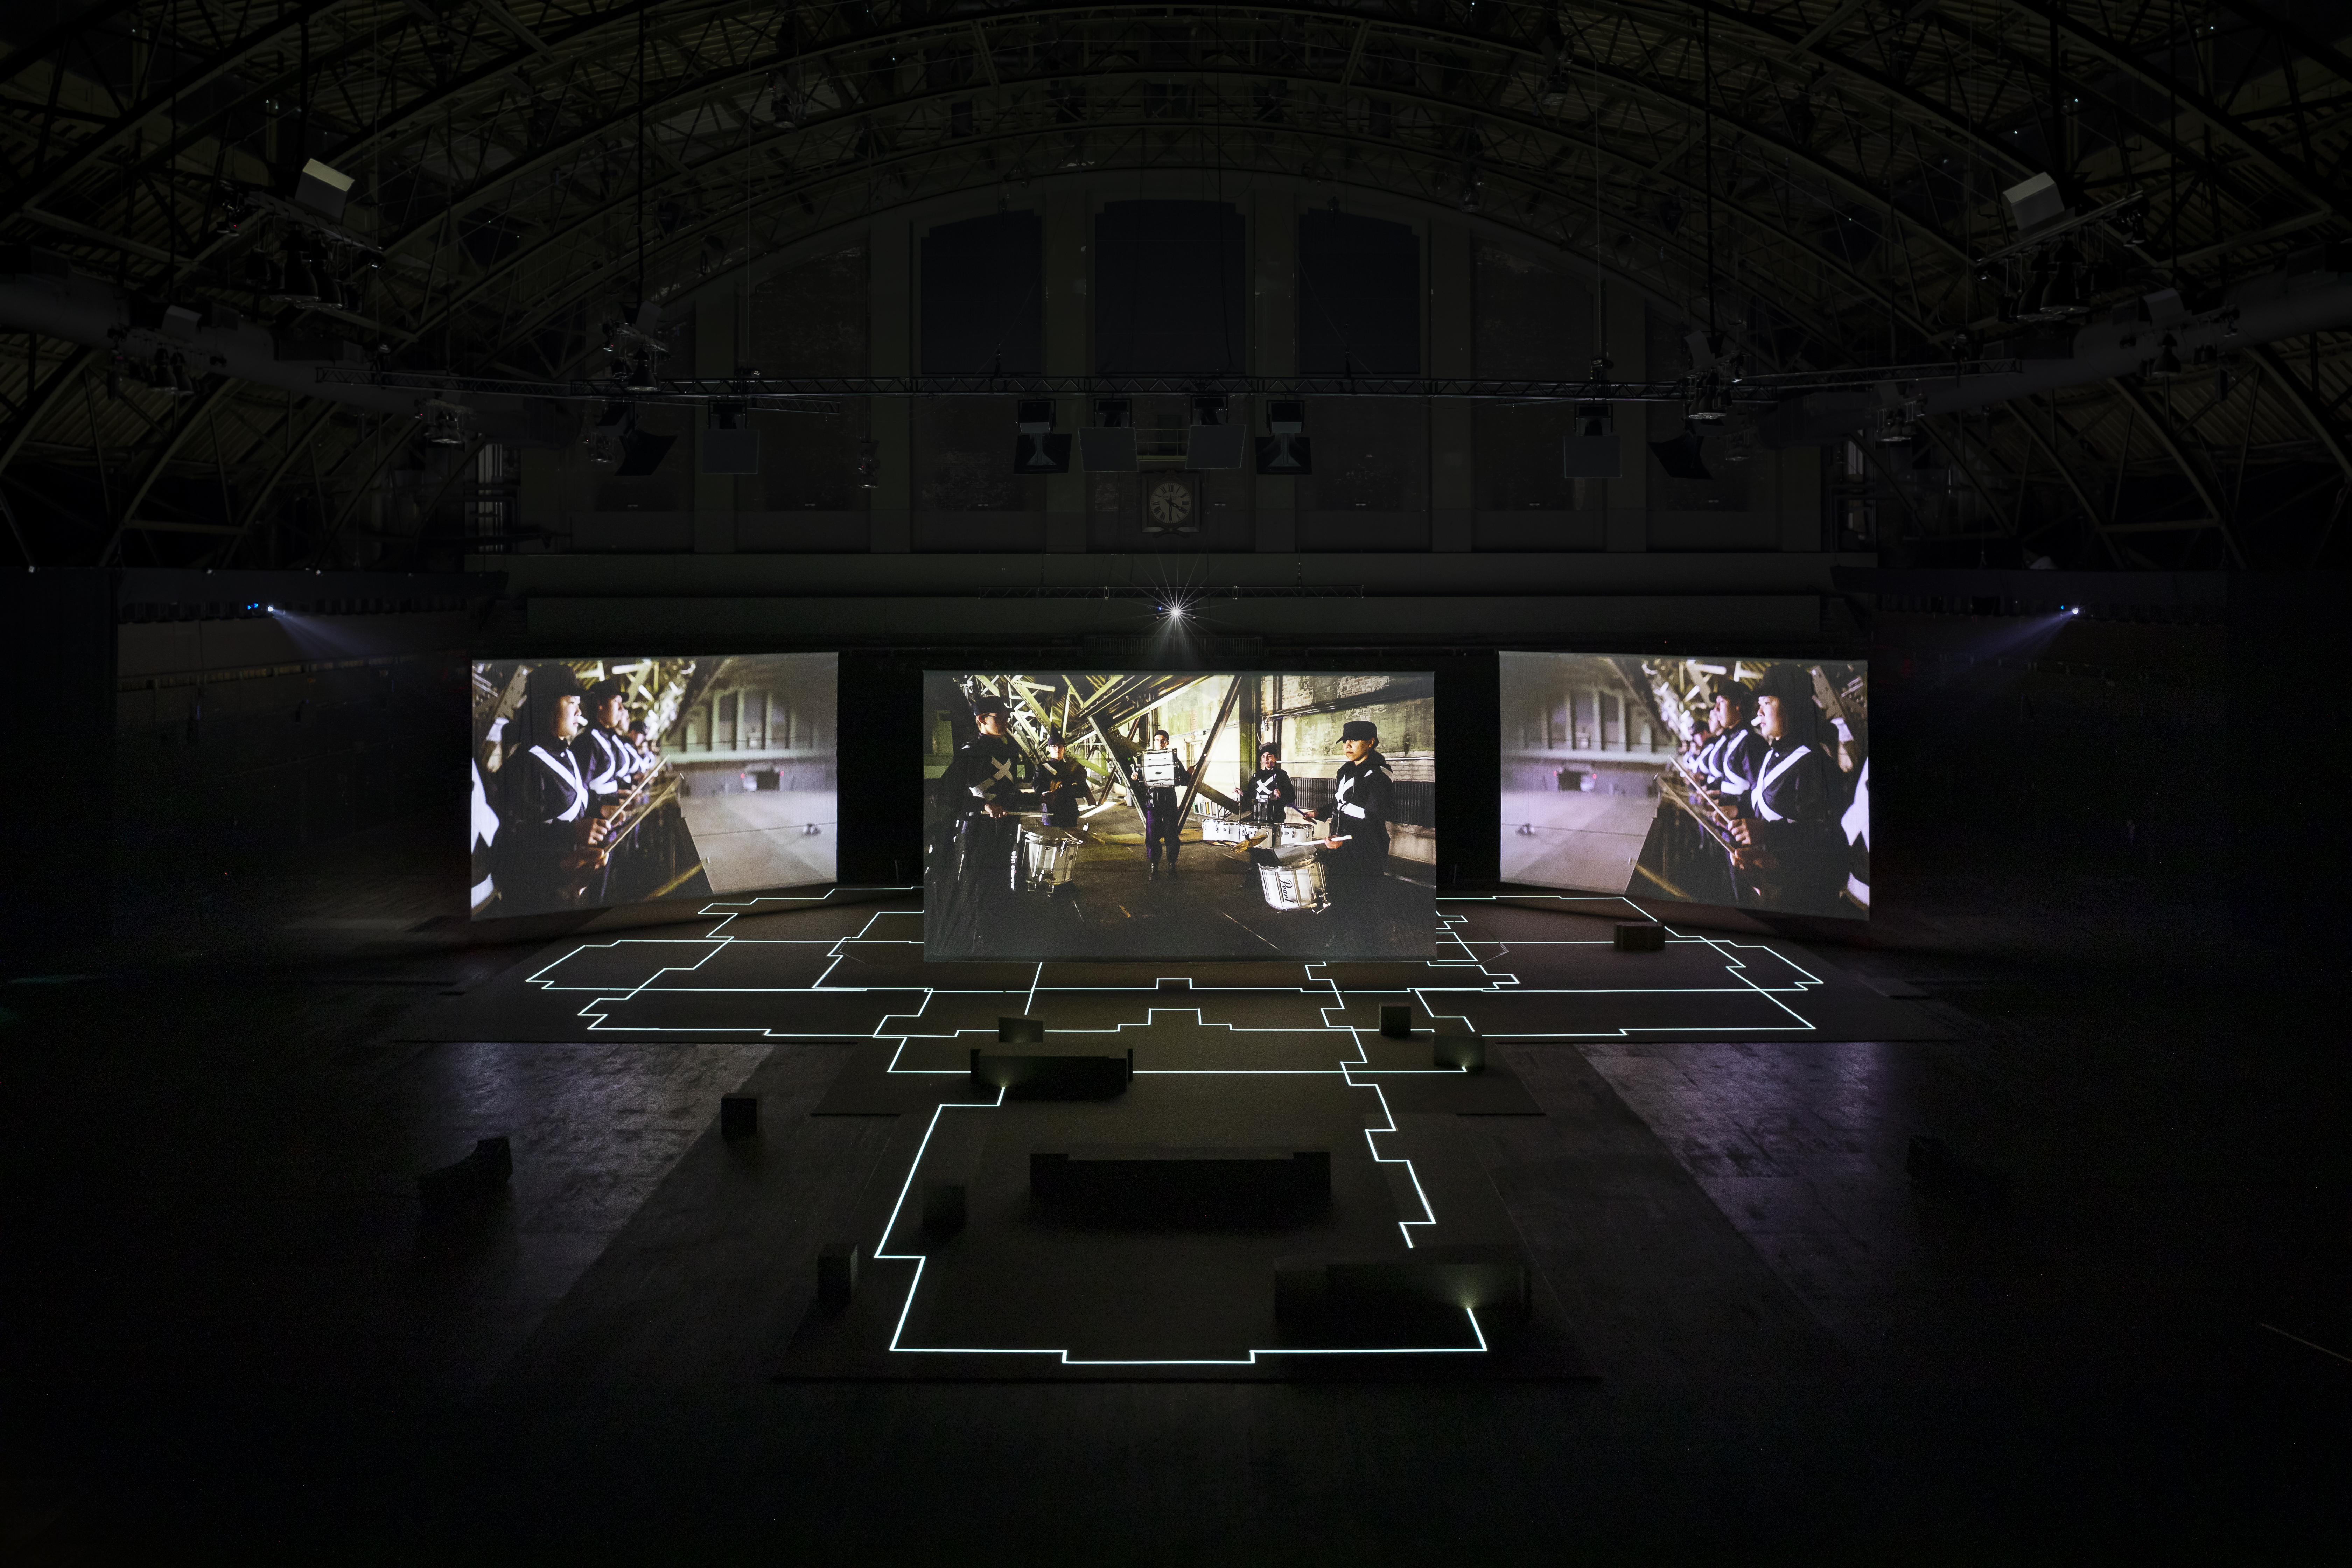 An darken industrial space with three big screens showing a three-channel video work by artist Hito Steyerl at Park Avenue Armory, NYC